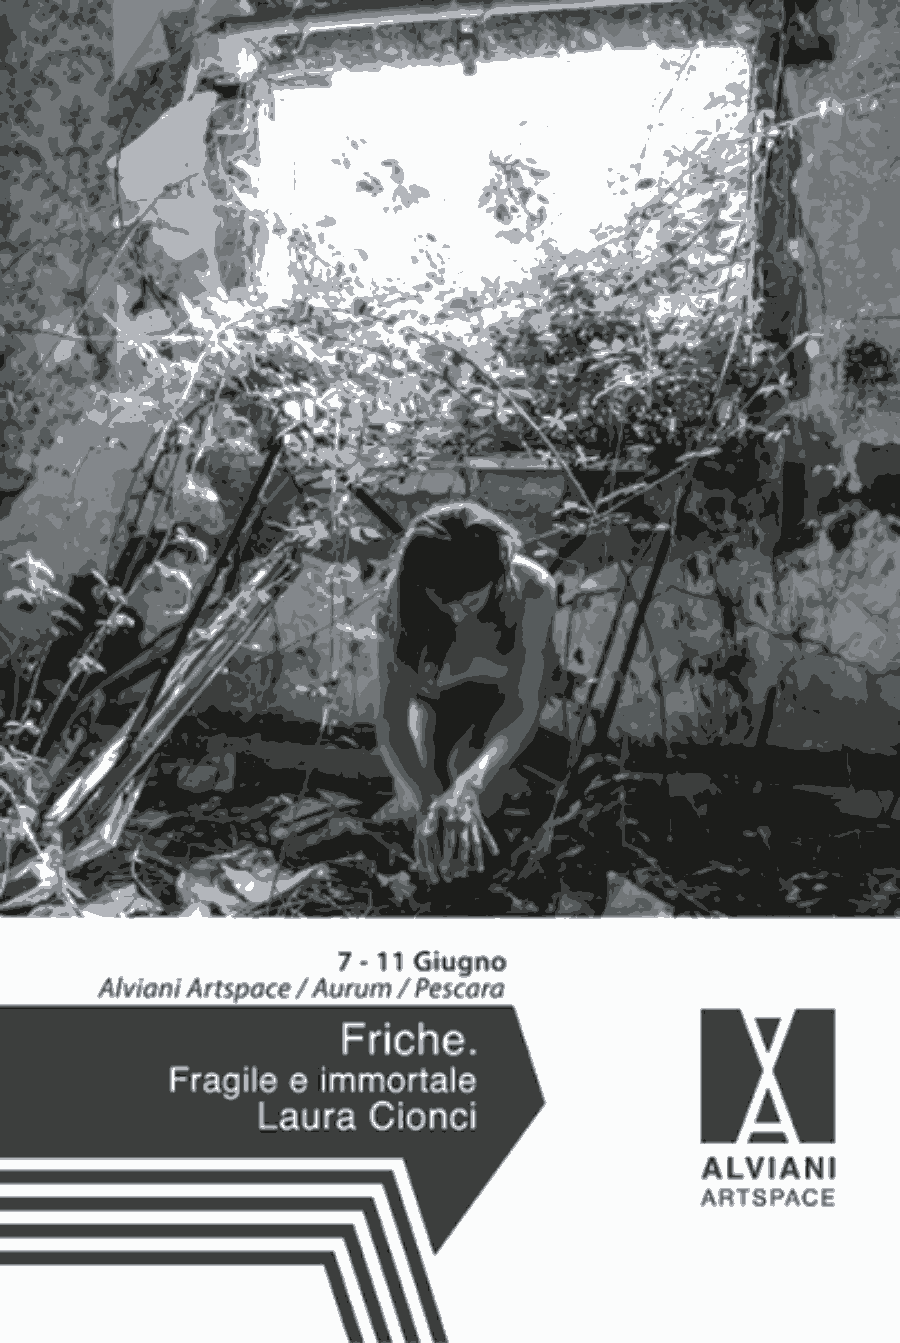 Friche. Fragile e immortale